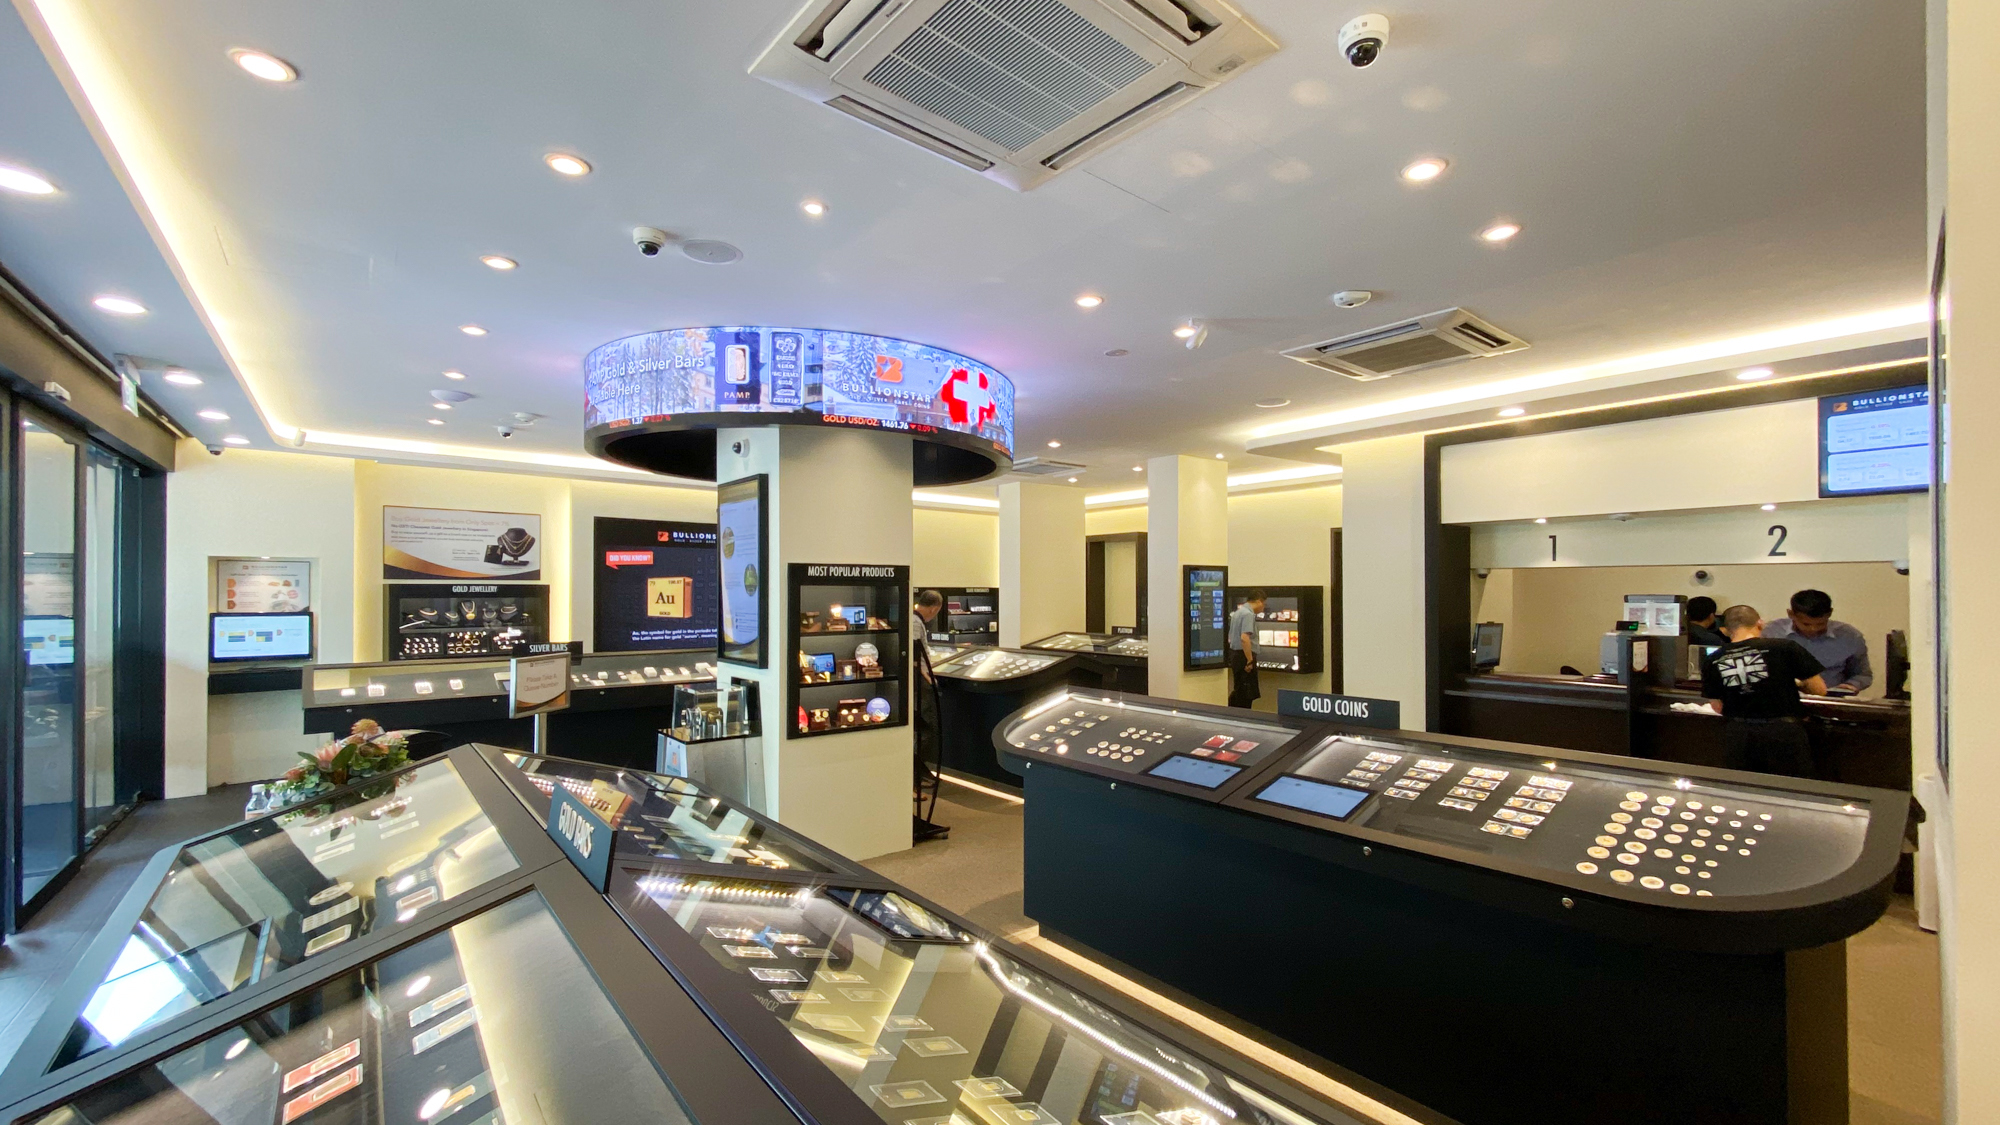 BullionStar's retail shop and showroom in central Singapore